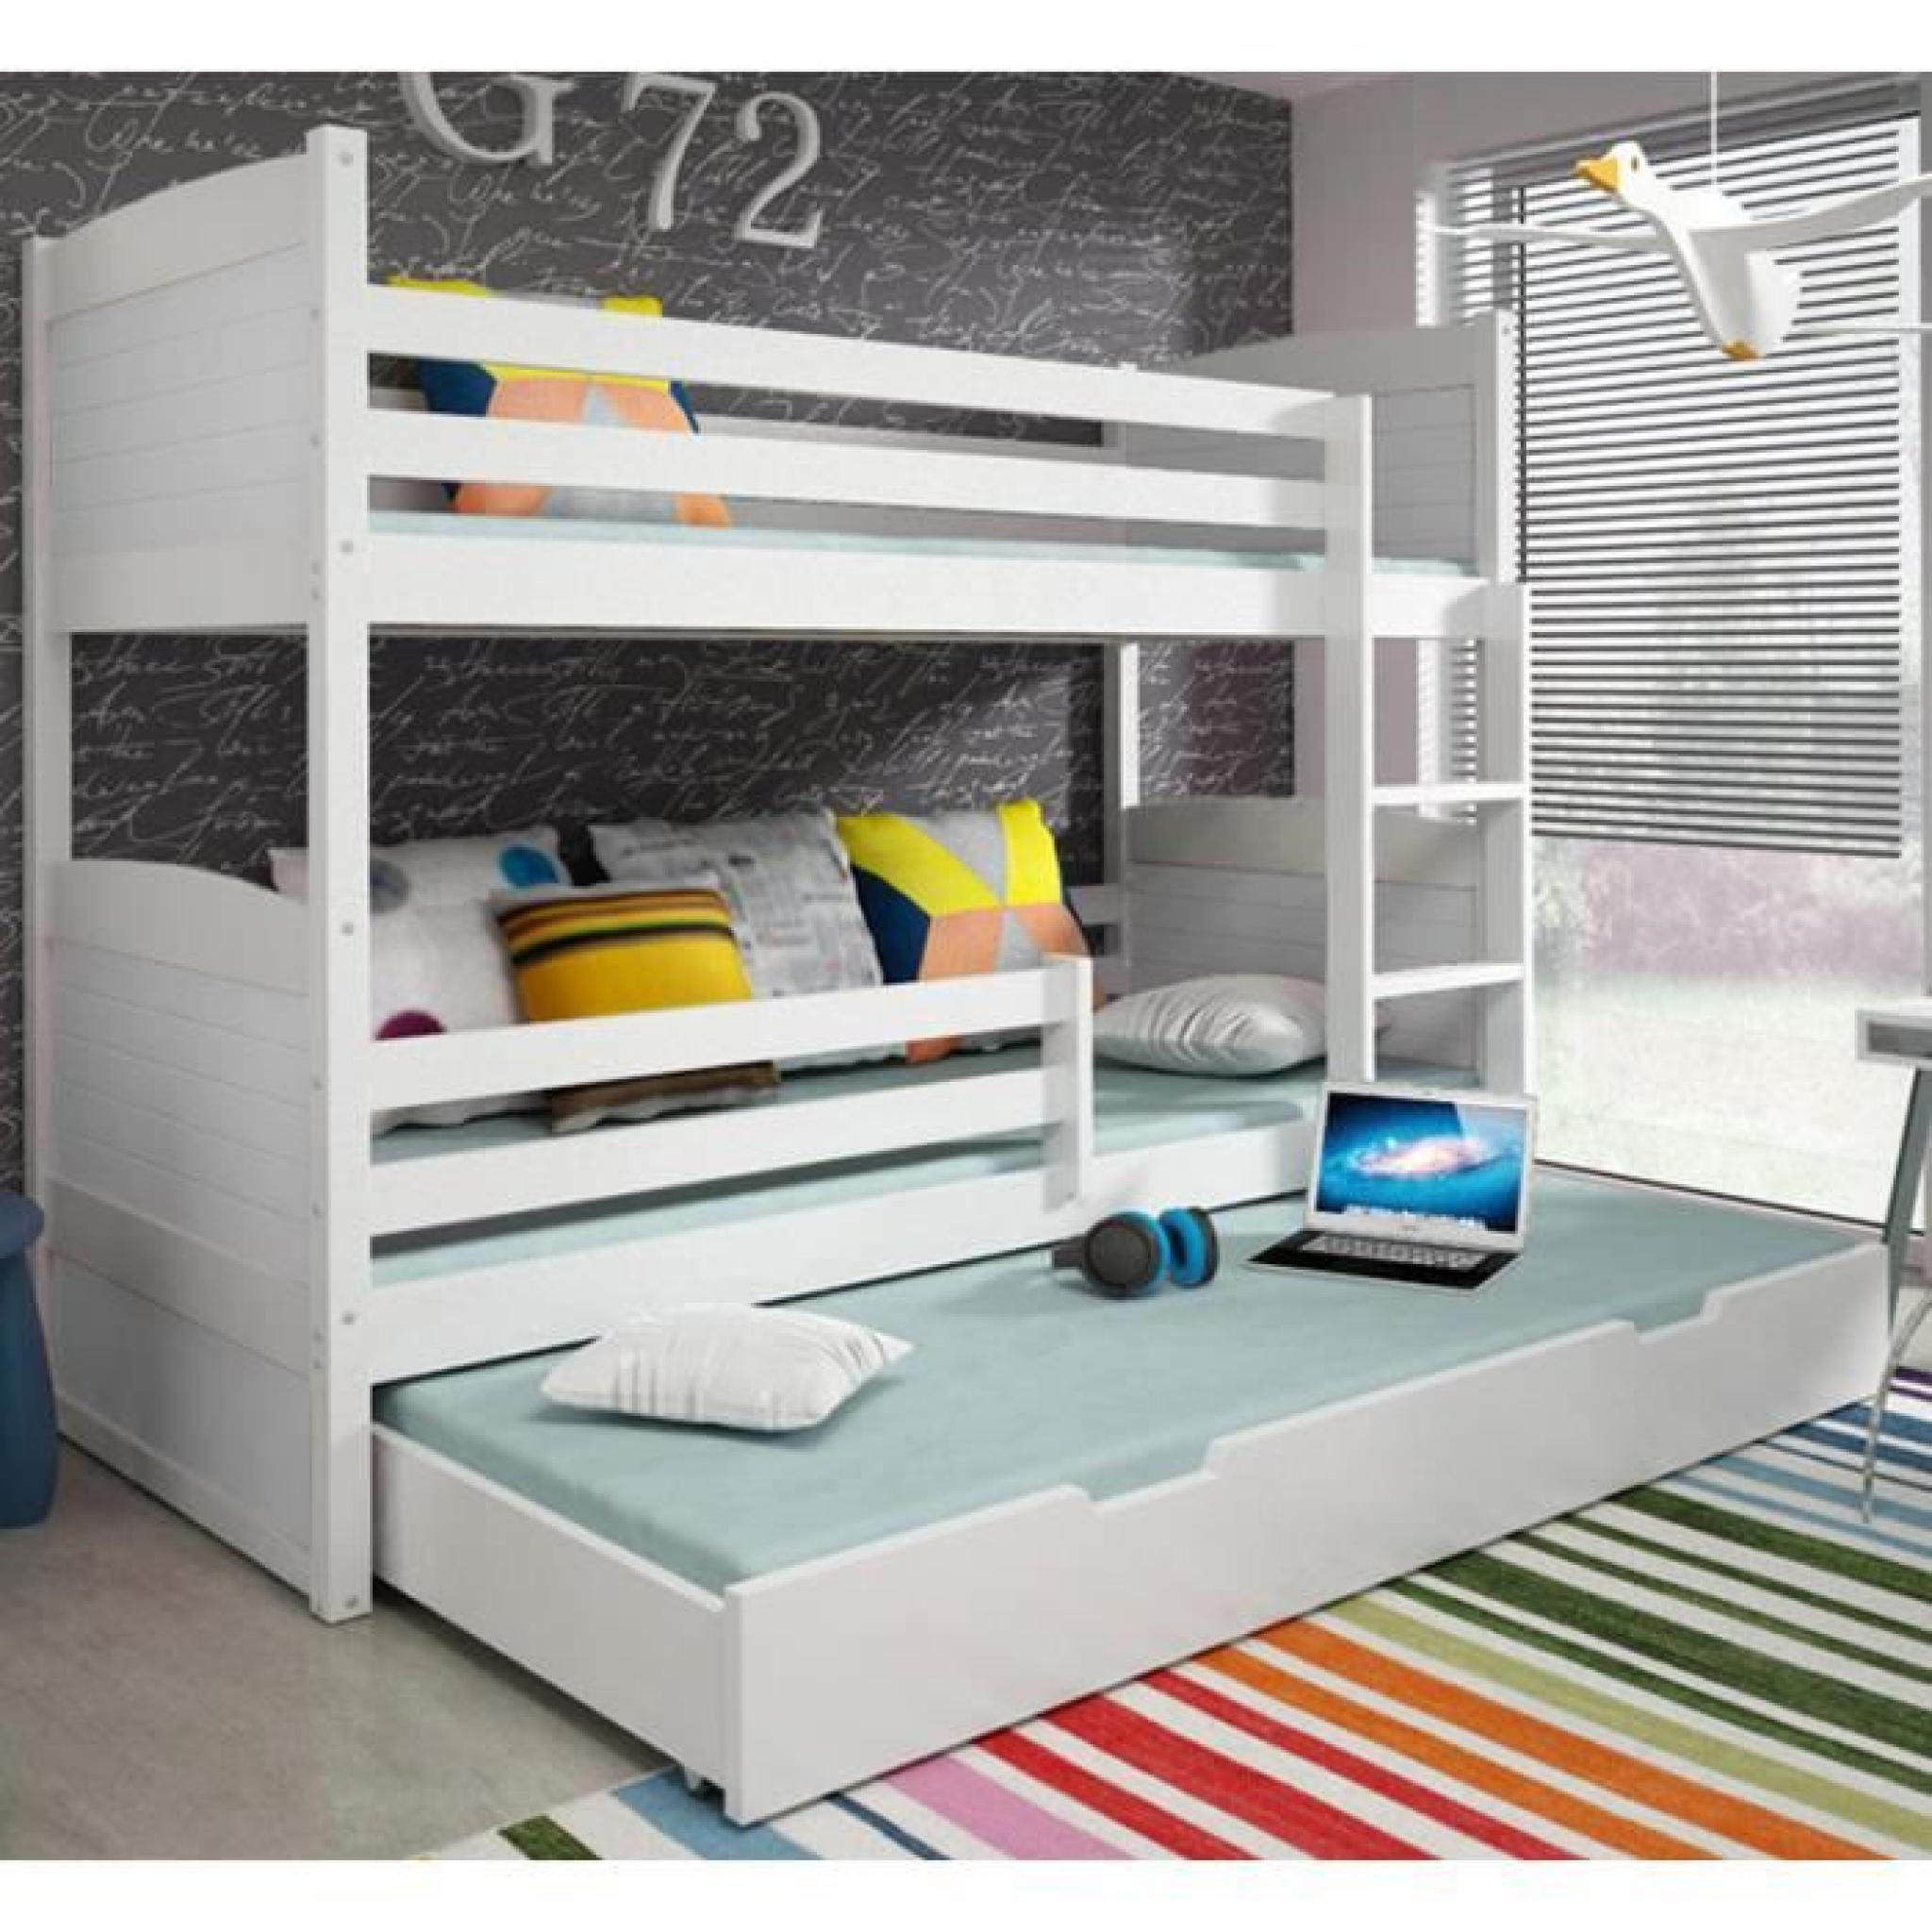 lit superpos rico 3 en pin 160x80 blanc achat vente lit superpose pas cher couleur et. Black Bedroom Furniture Sets. Home Design Ideas